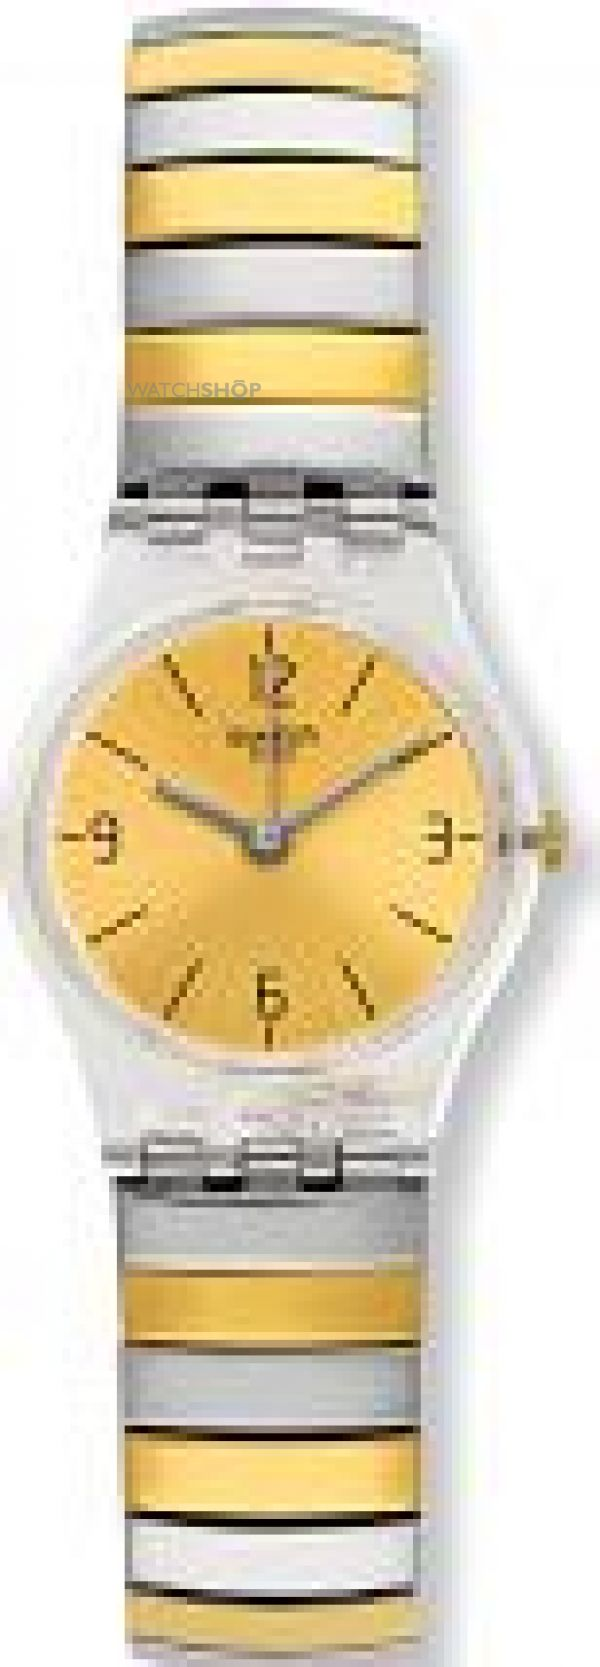 Ladies Swatch Watch LK351B